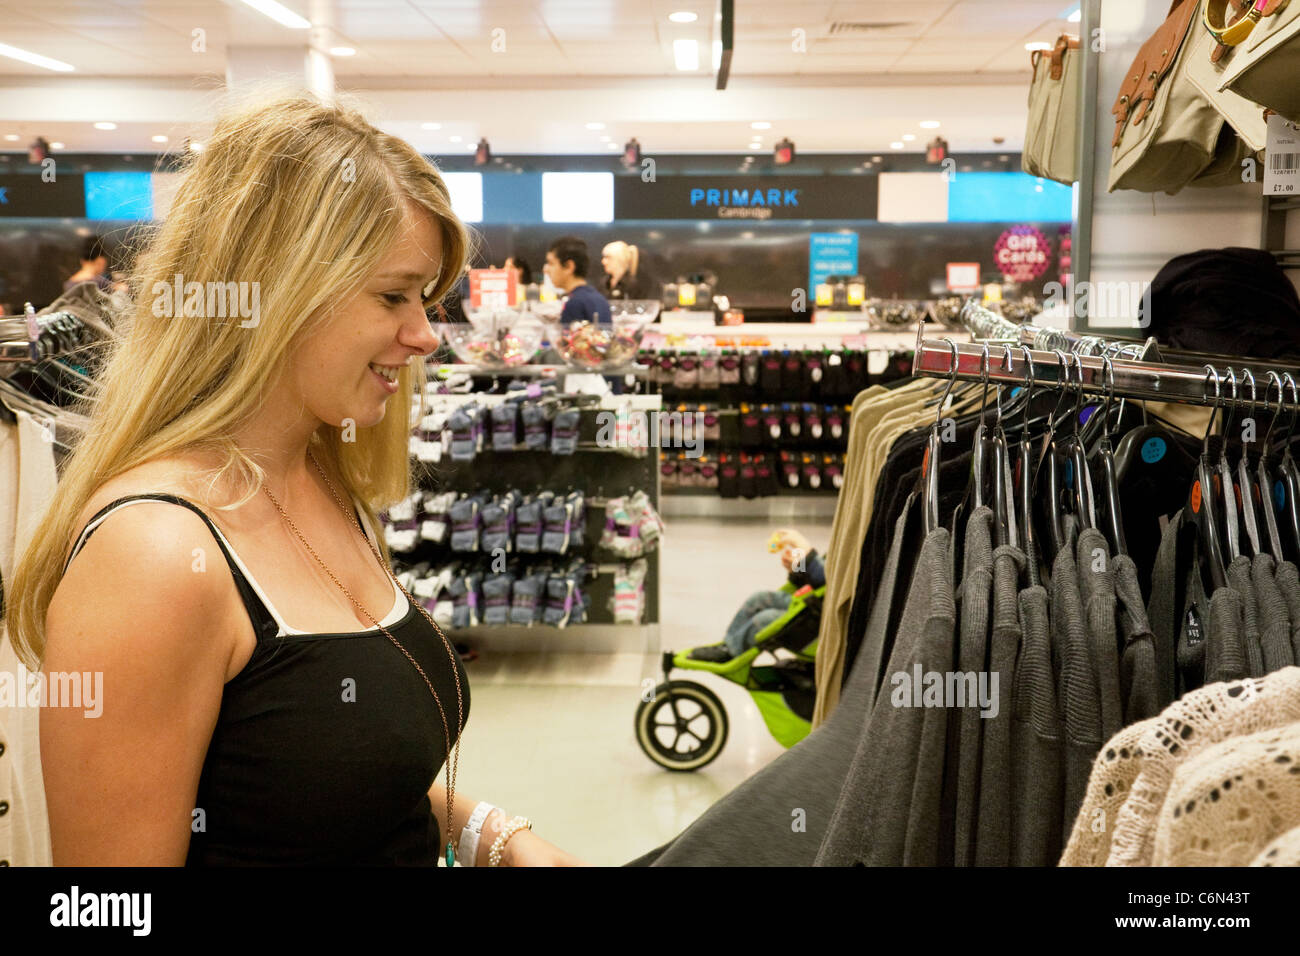 A teenage girl shopping inside Primark clothes store Cambridge UK - Stock Image